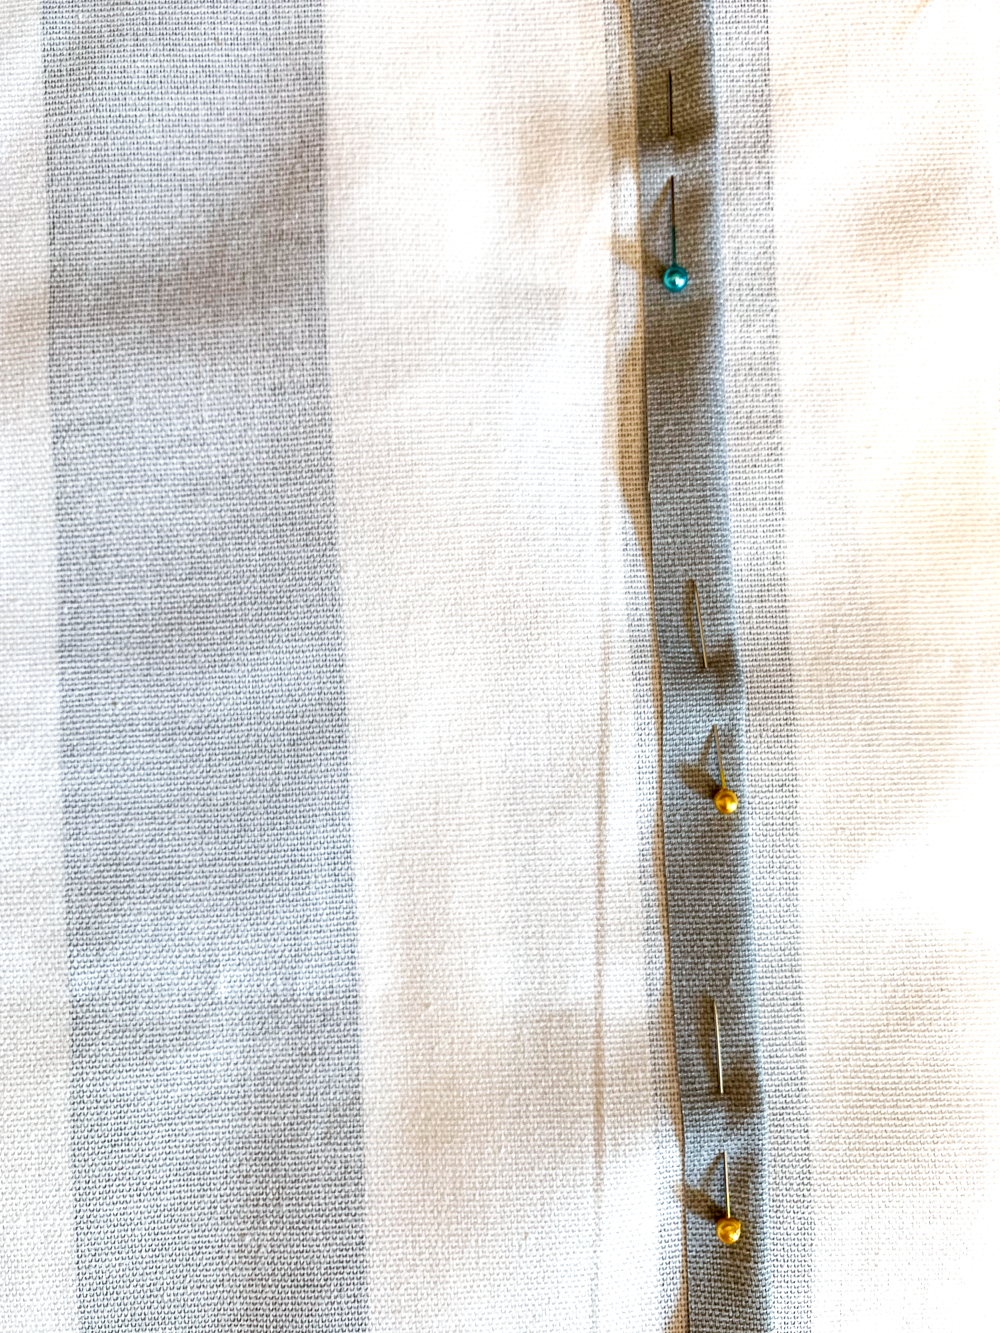 pins in fabric for 1/2